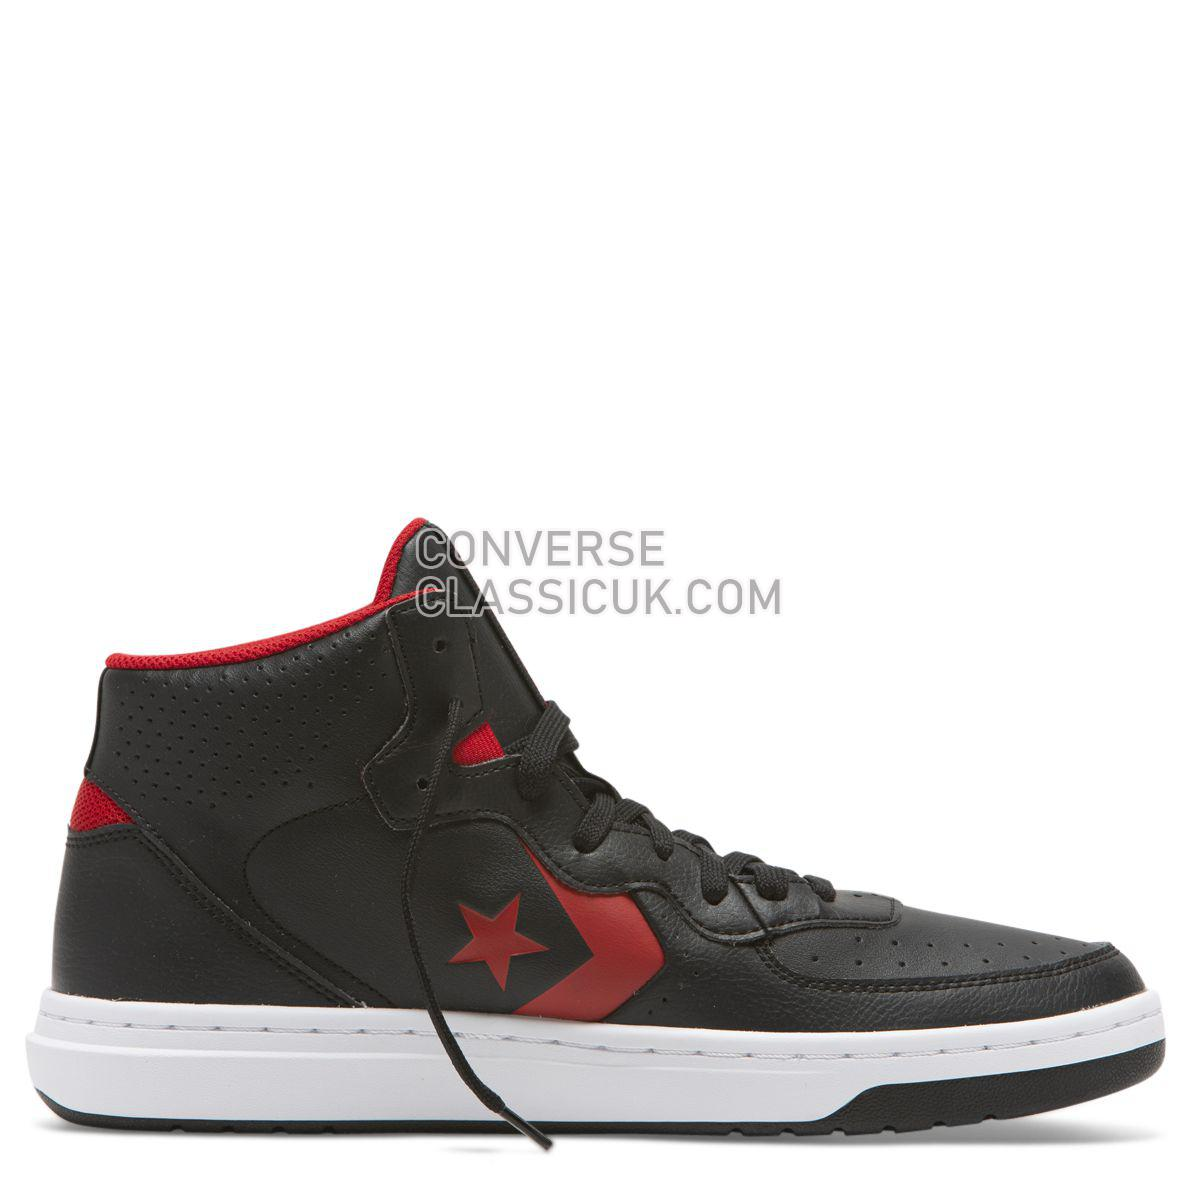 Converse Rival Shoot For The Moon Mid Black Mens 164889 Black/Enamel Red/White Shoes